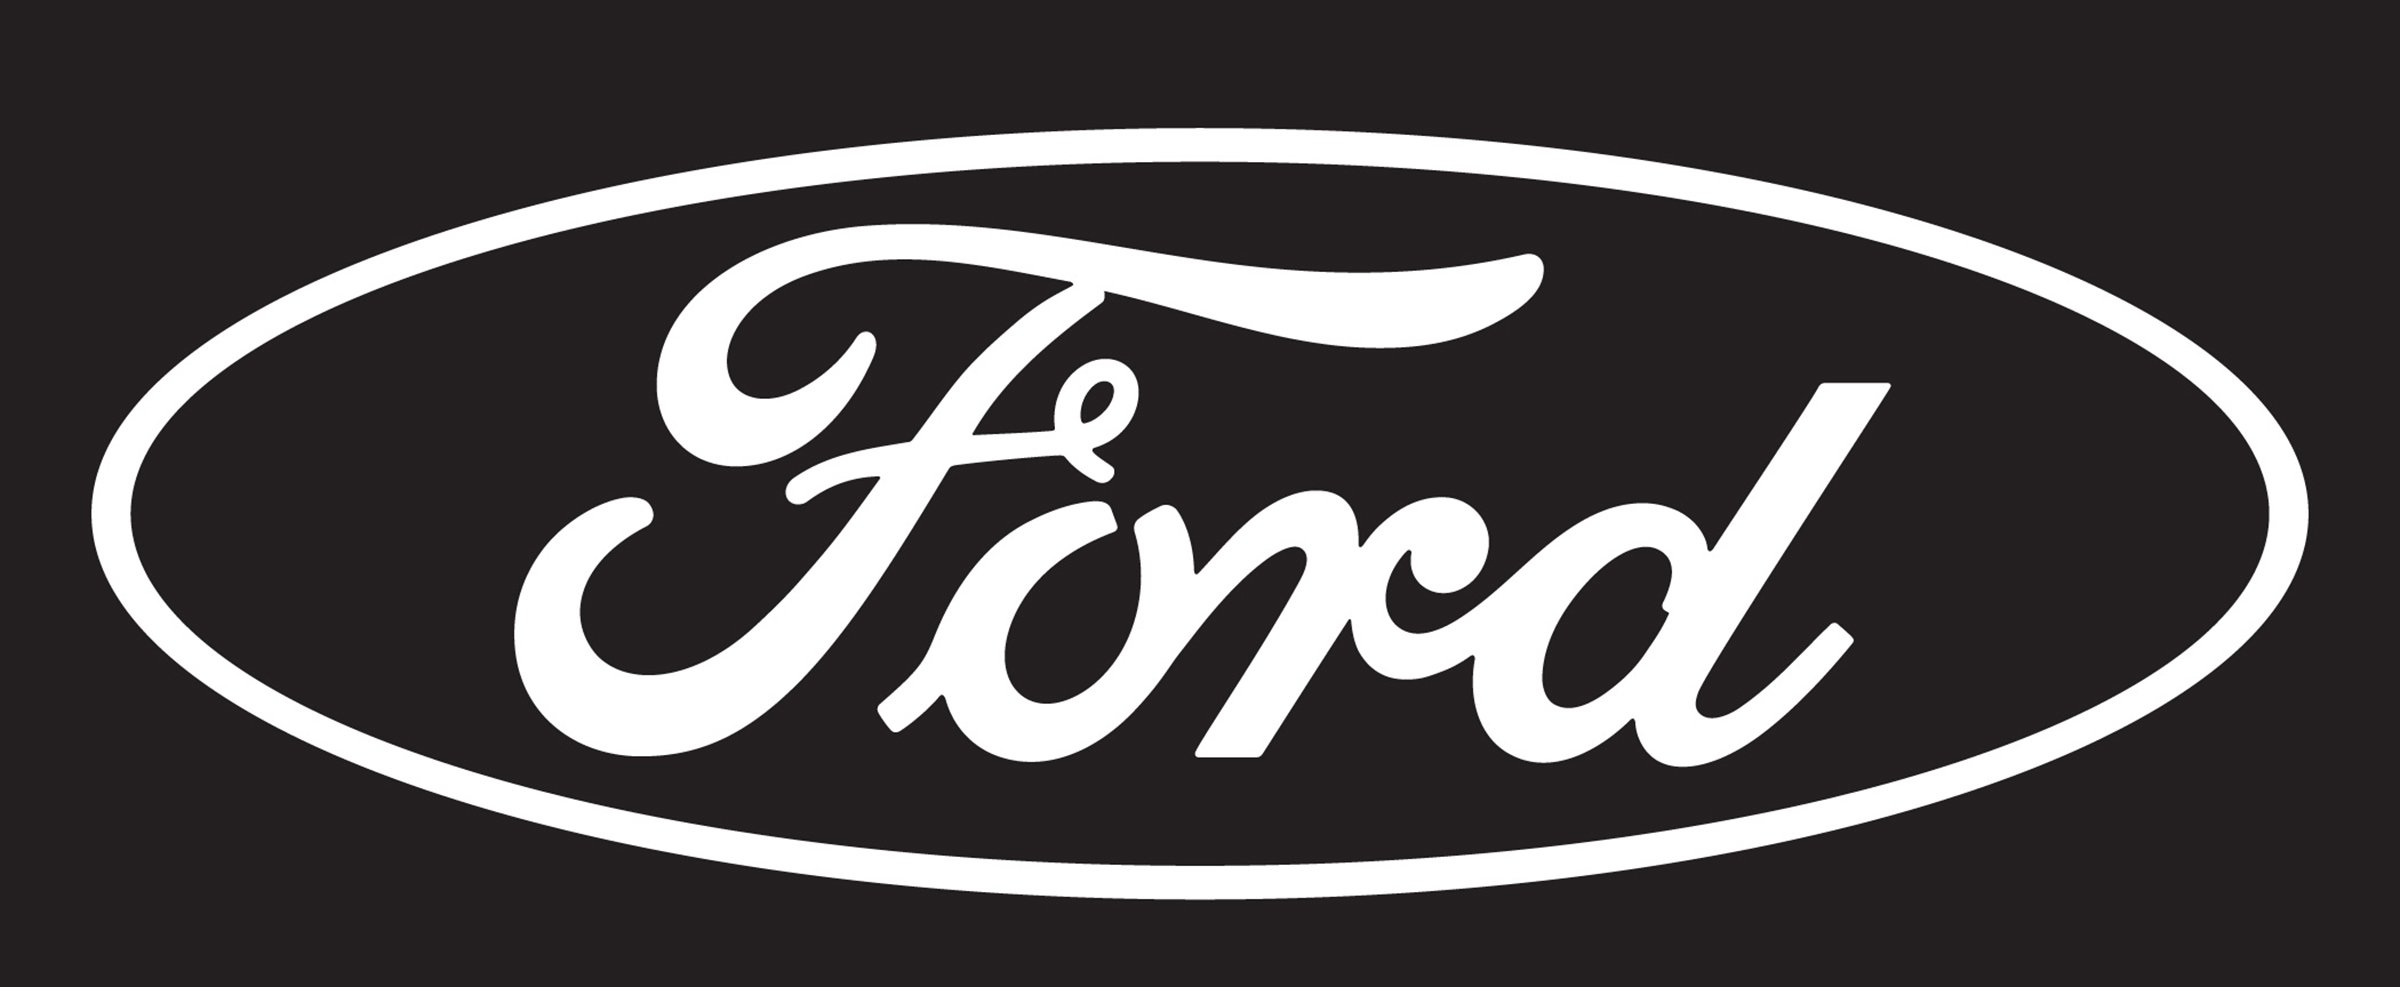 Chroma 6187 Ford Holographic Decal